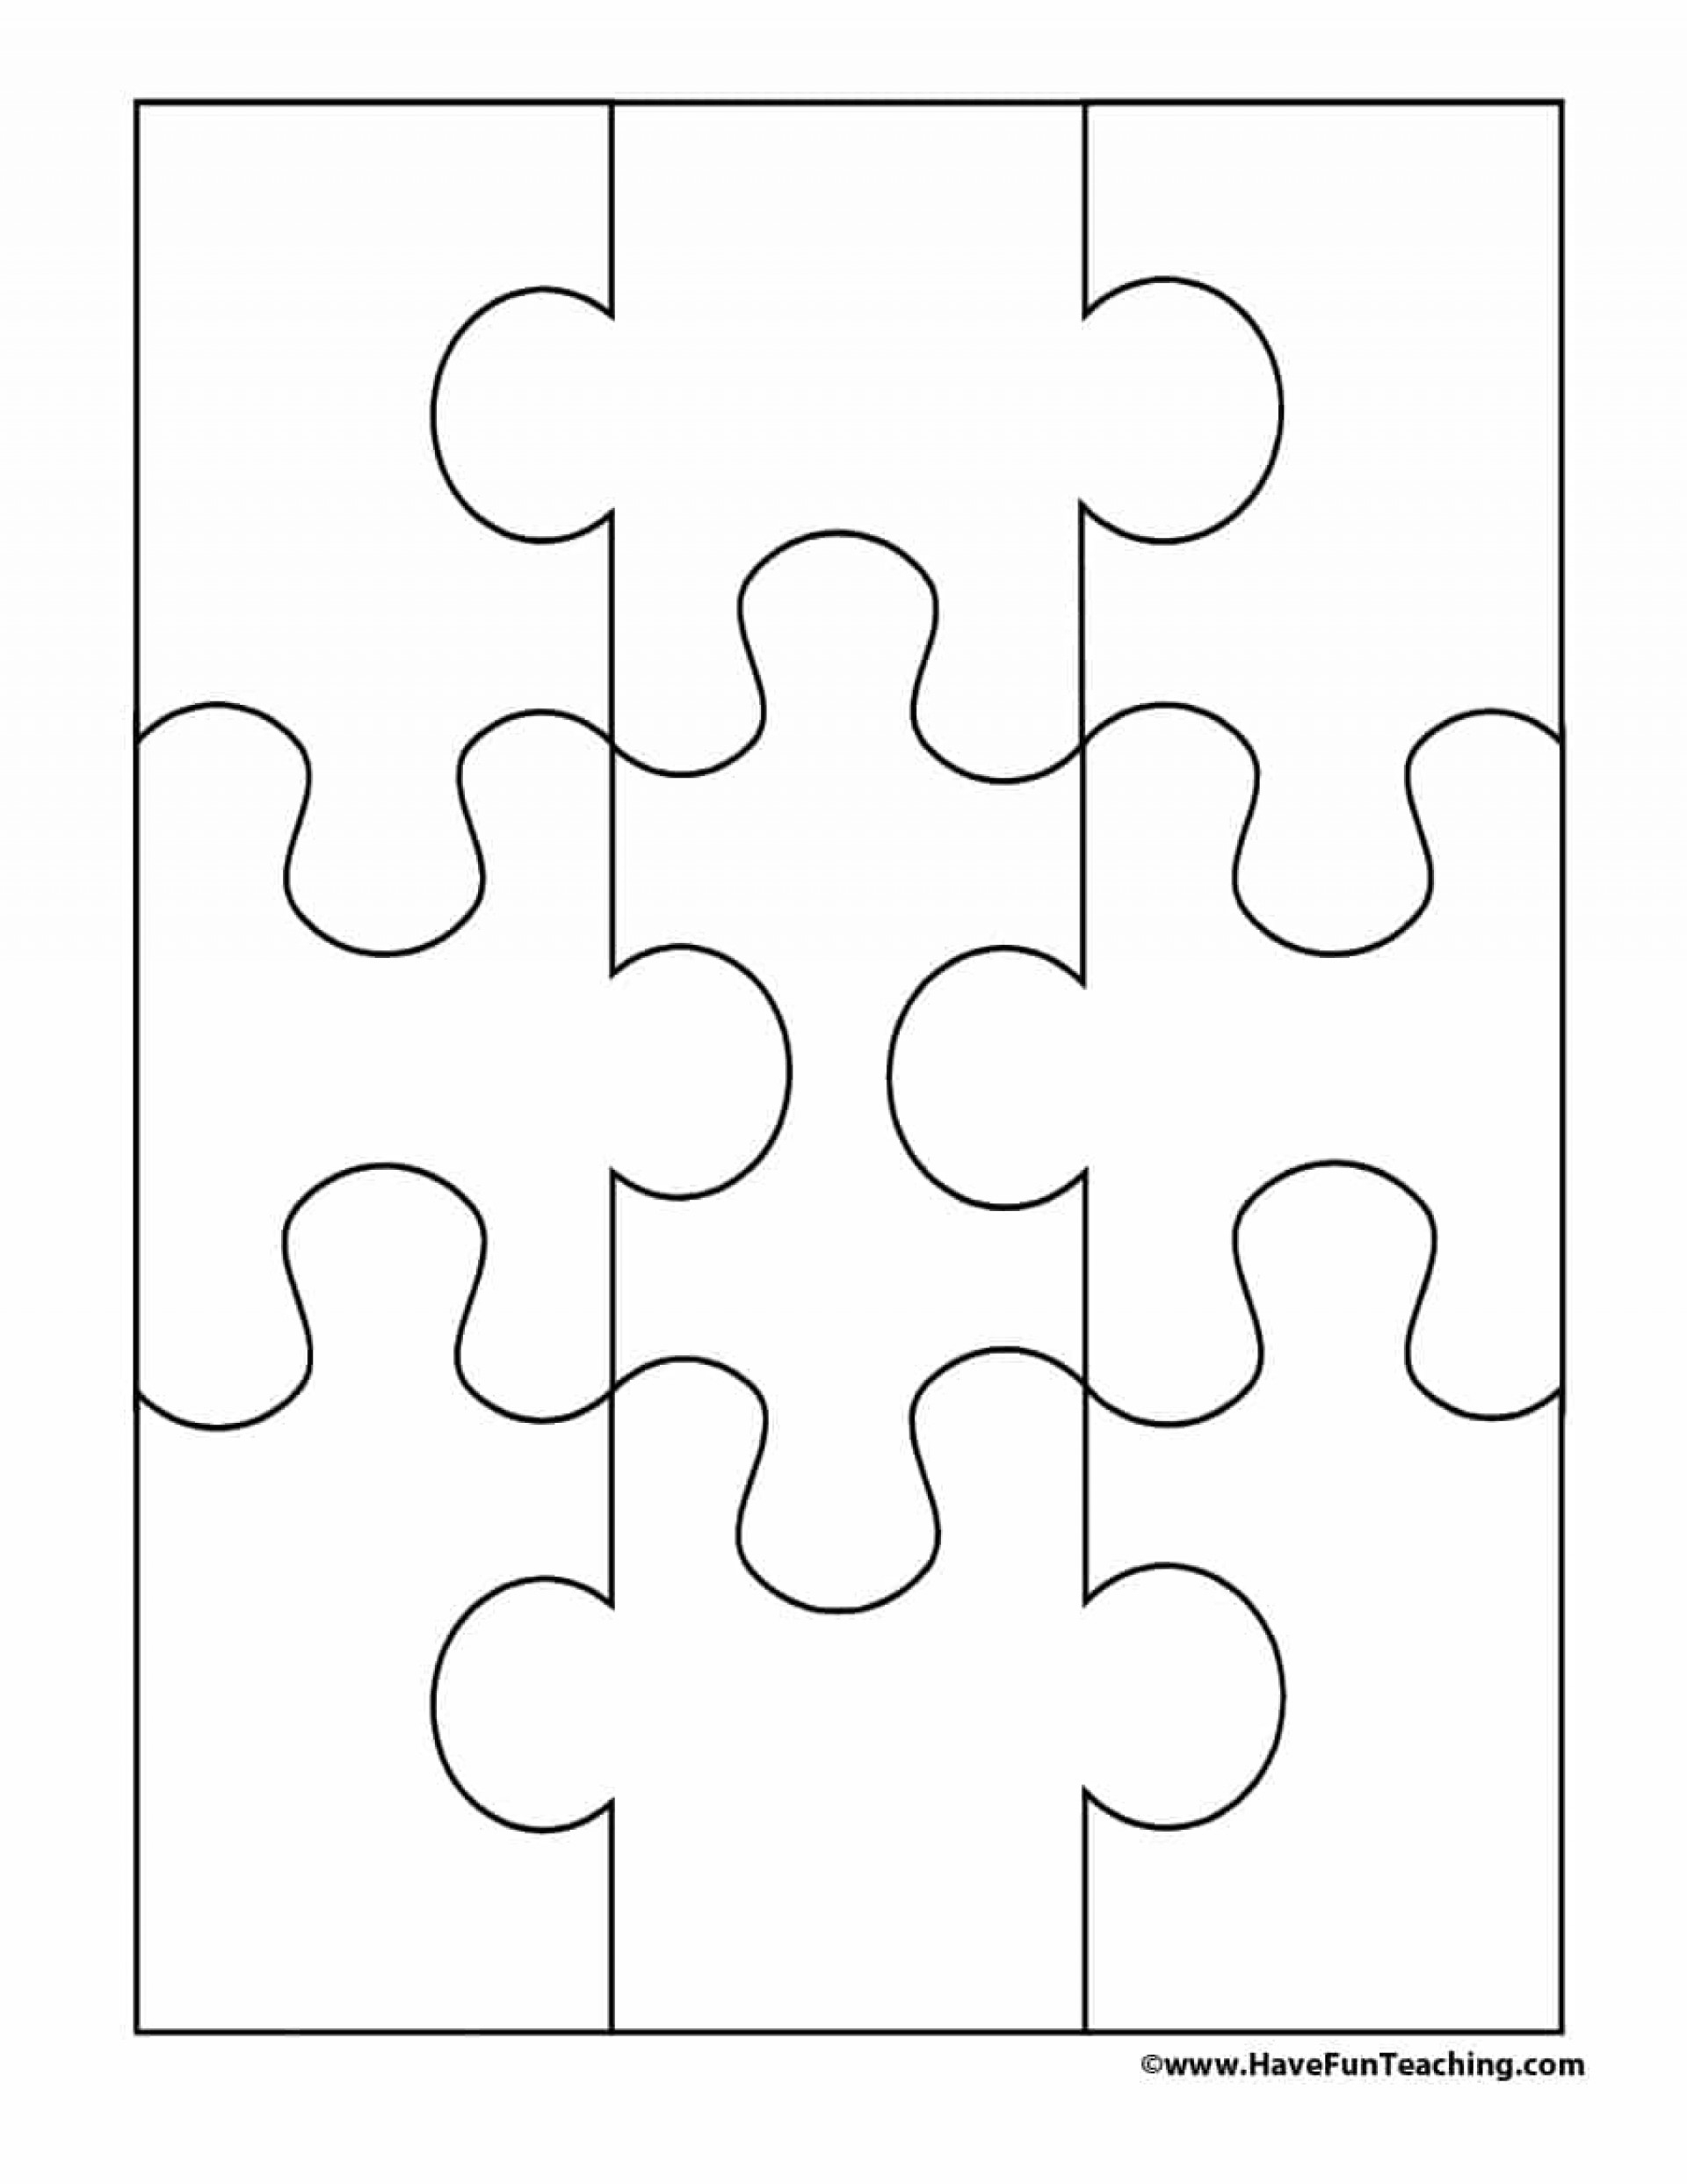 005 Puzzle Piece Template Ideas Jig Best Saw Free Blank Jigsaw - Printable Jigsaw Puzzle Pieces